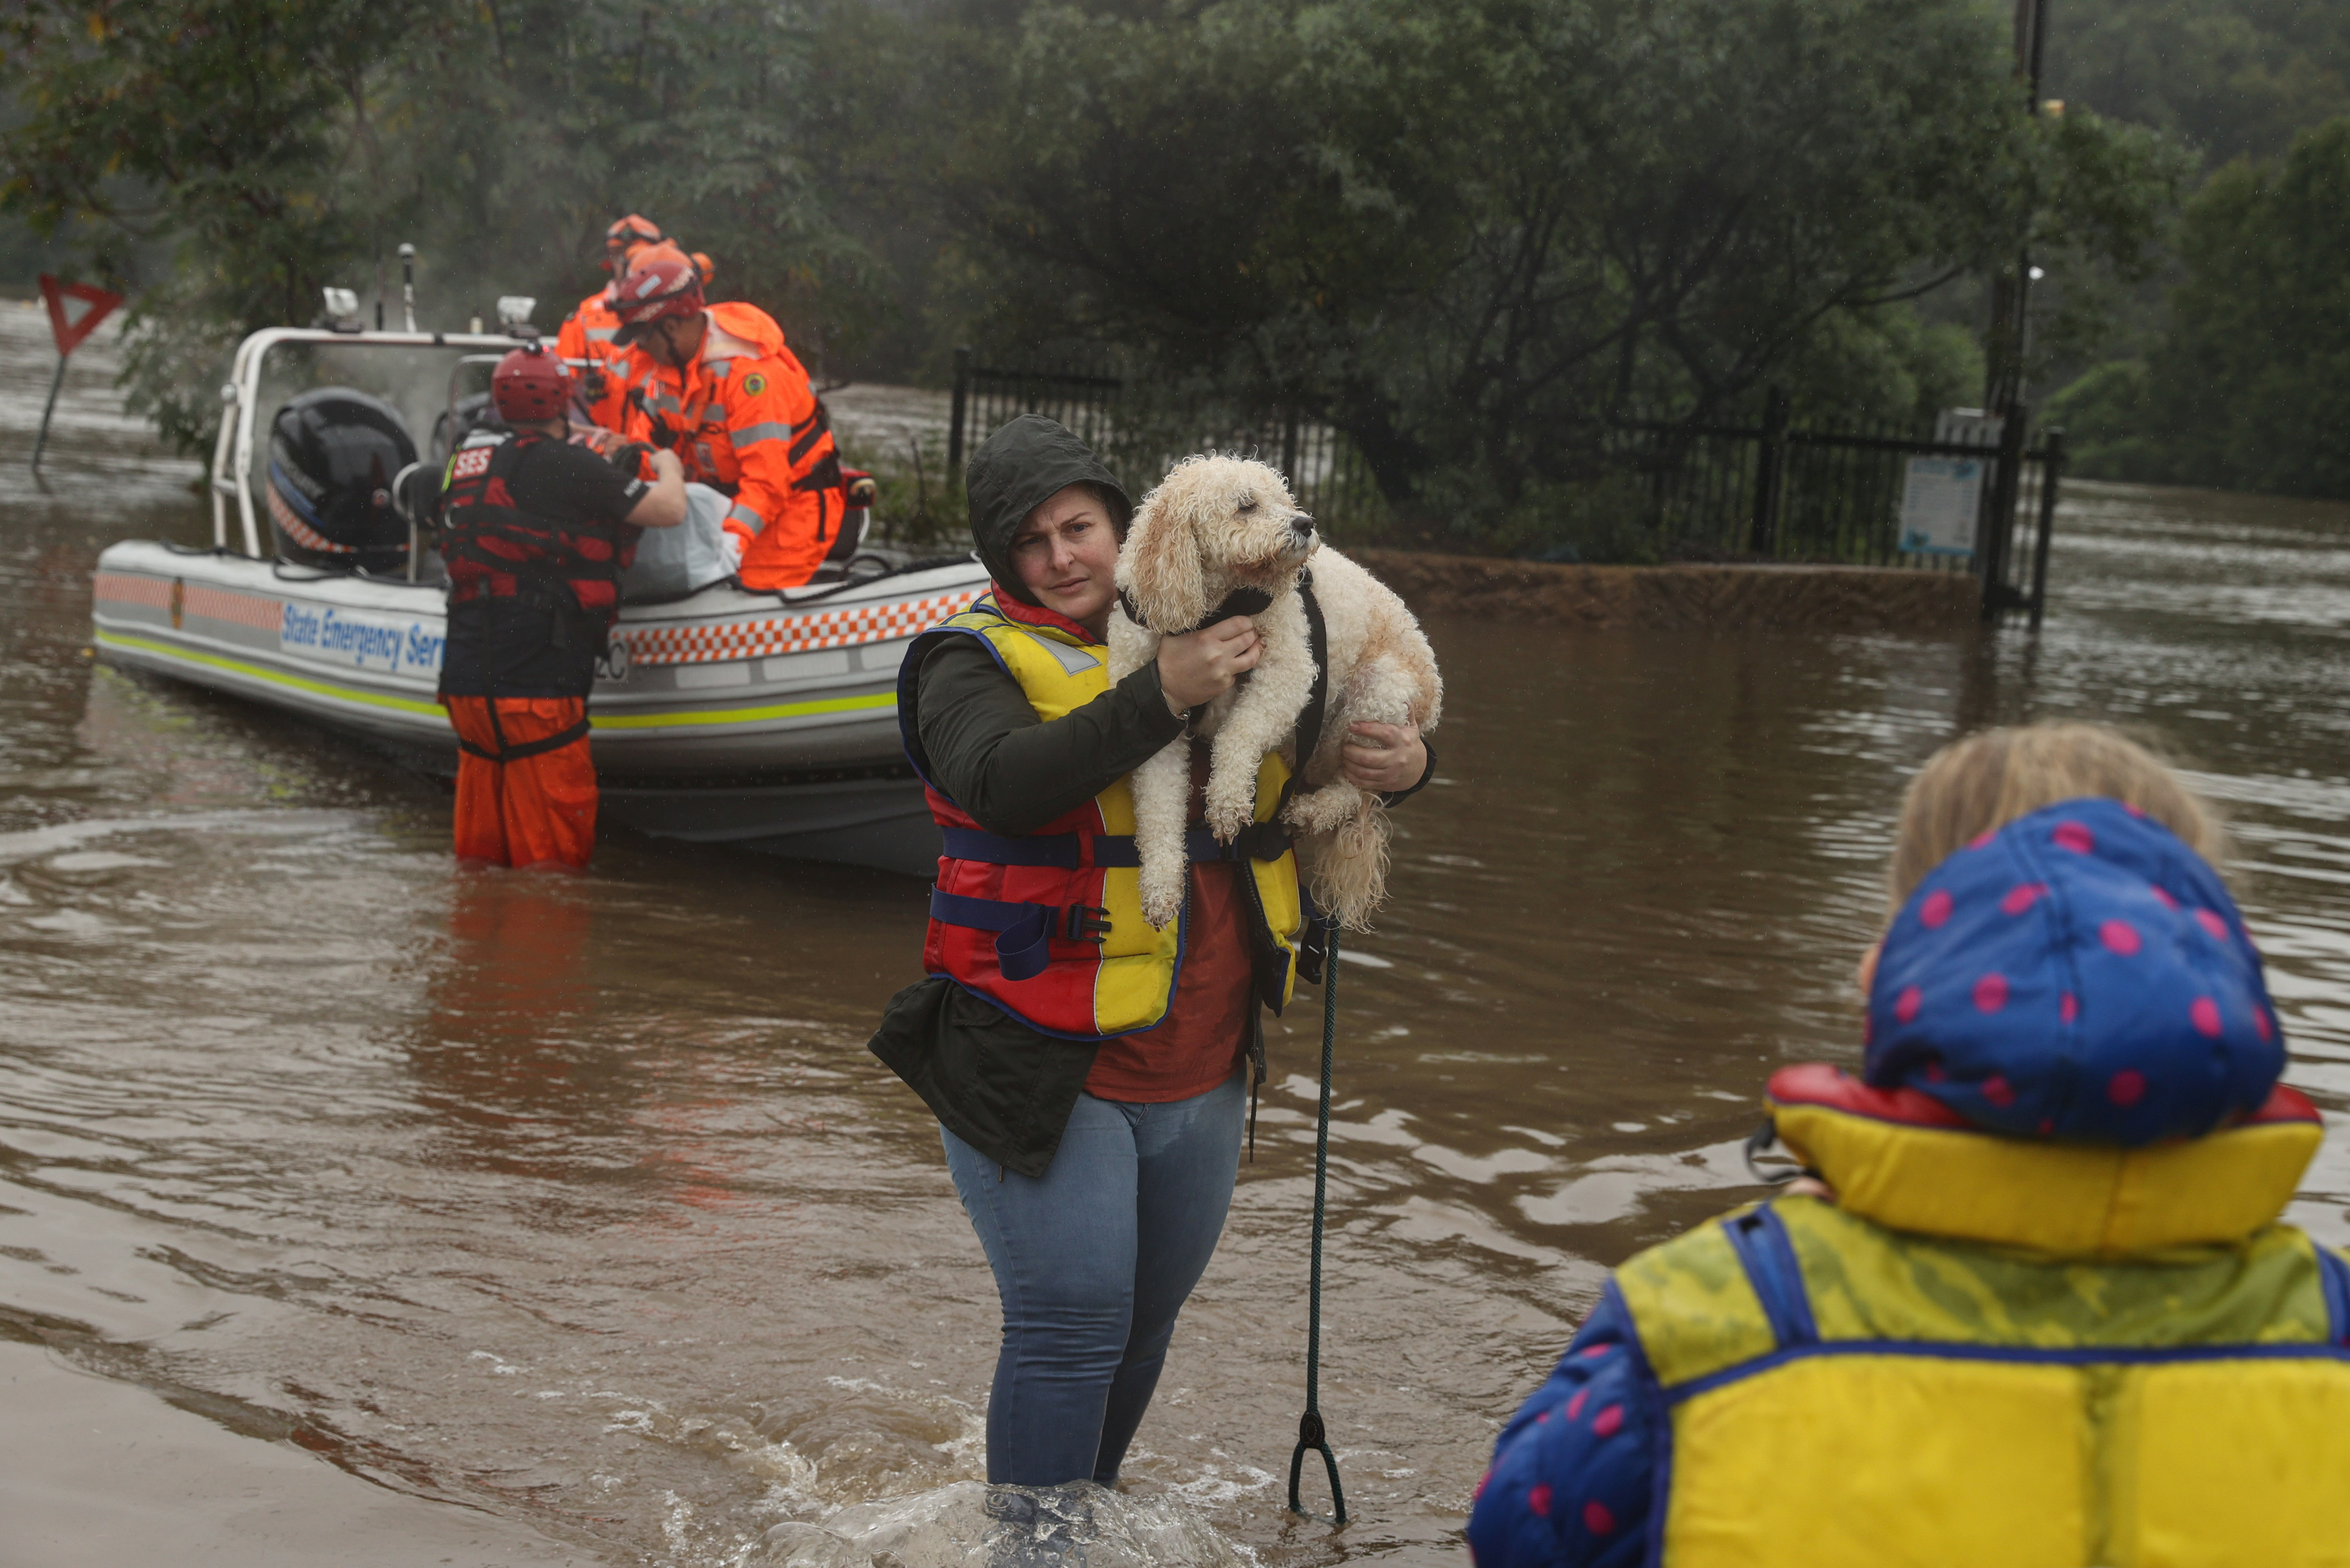 A woman and dog rescued by a State Emergency Service crew make it to safety after being trapped by rising floodwaters, as the state of New South Wales experiences widespread flooding and severe weather, in the suburb of Sackville North in Sydney, Australia, March 23, 2021.  REUTERS/Loren Elliott